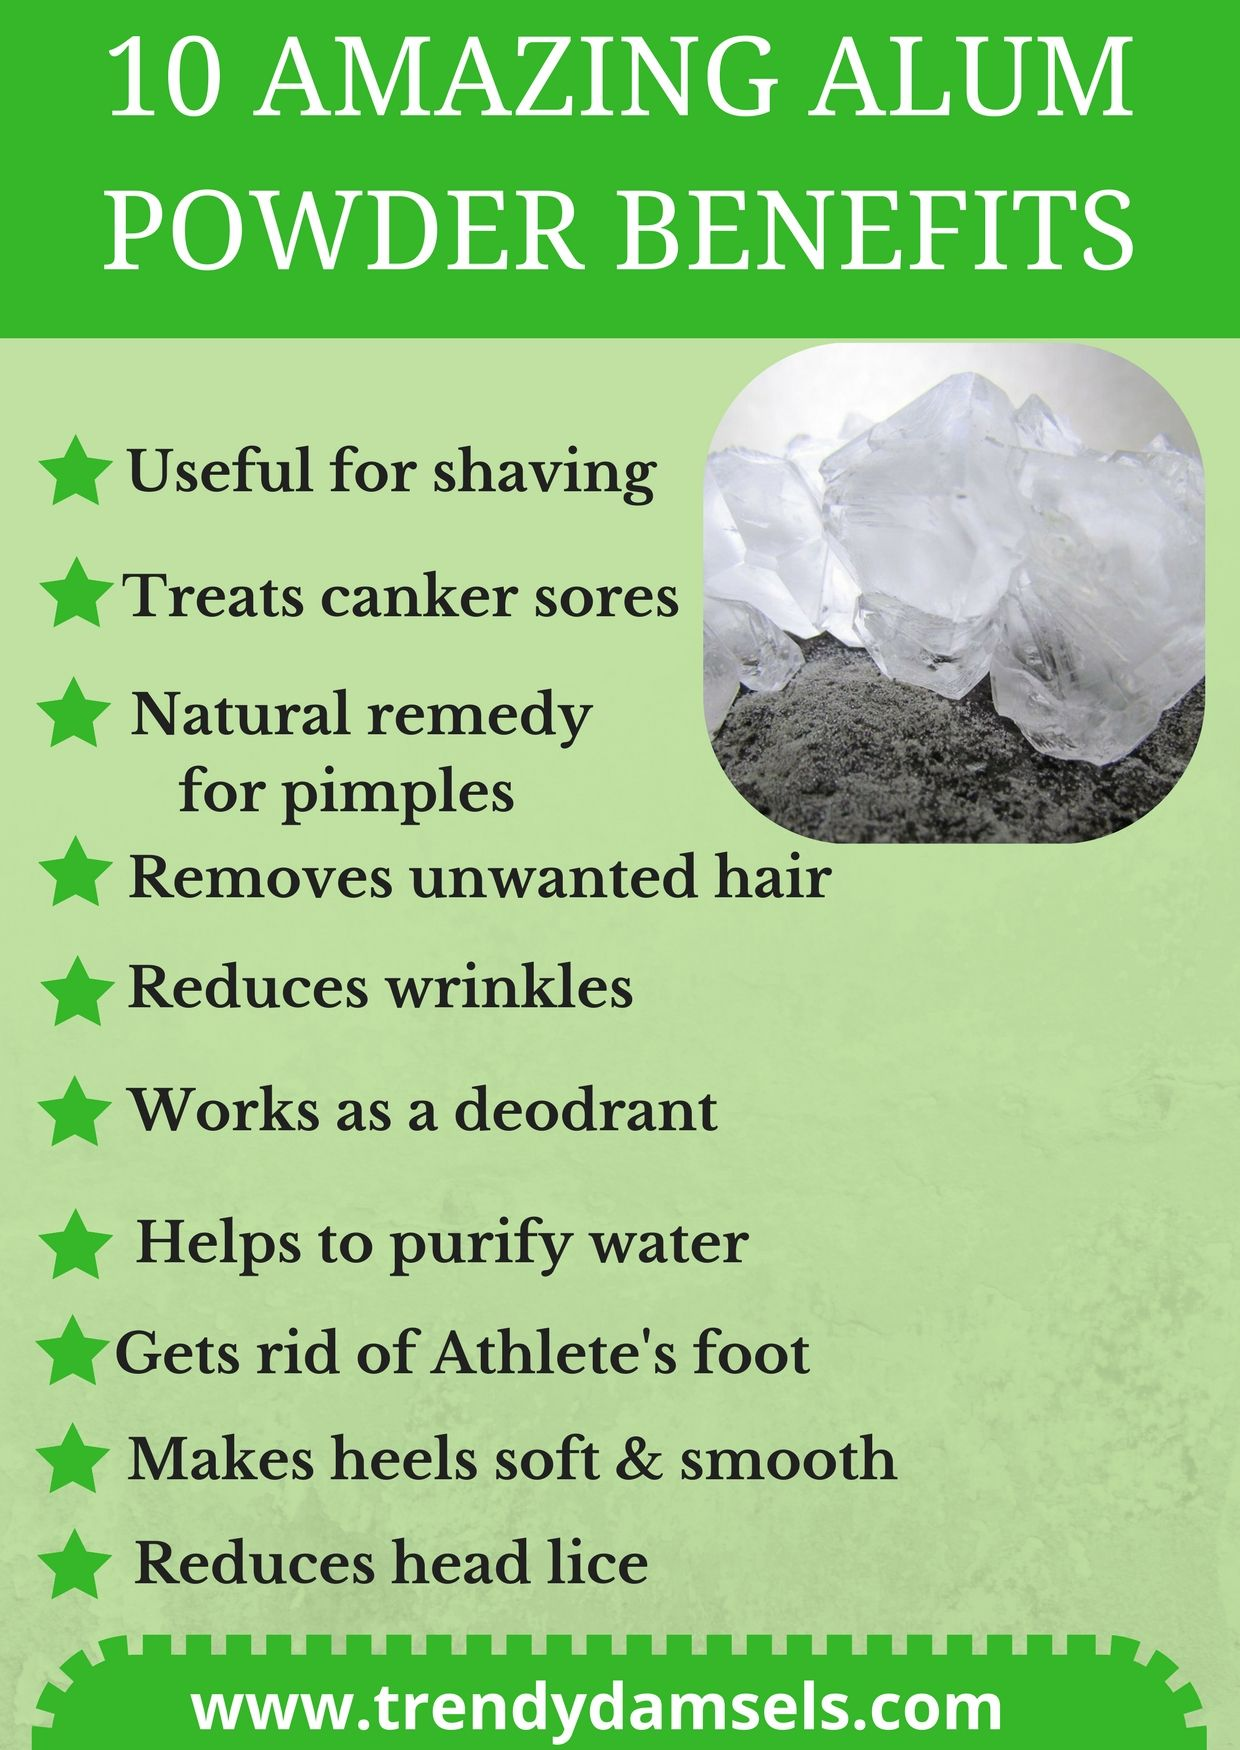 alum powder | DIY Beauty in 2019 | Natural remedies for